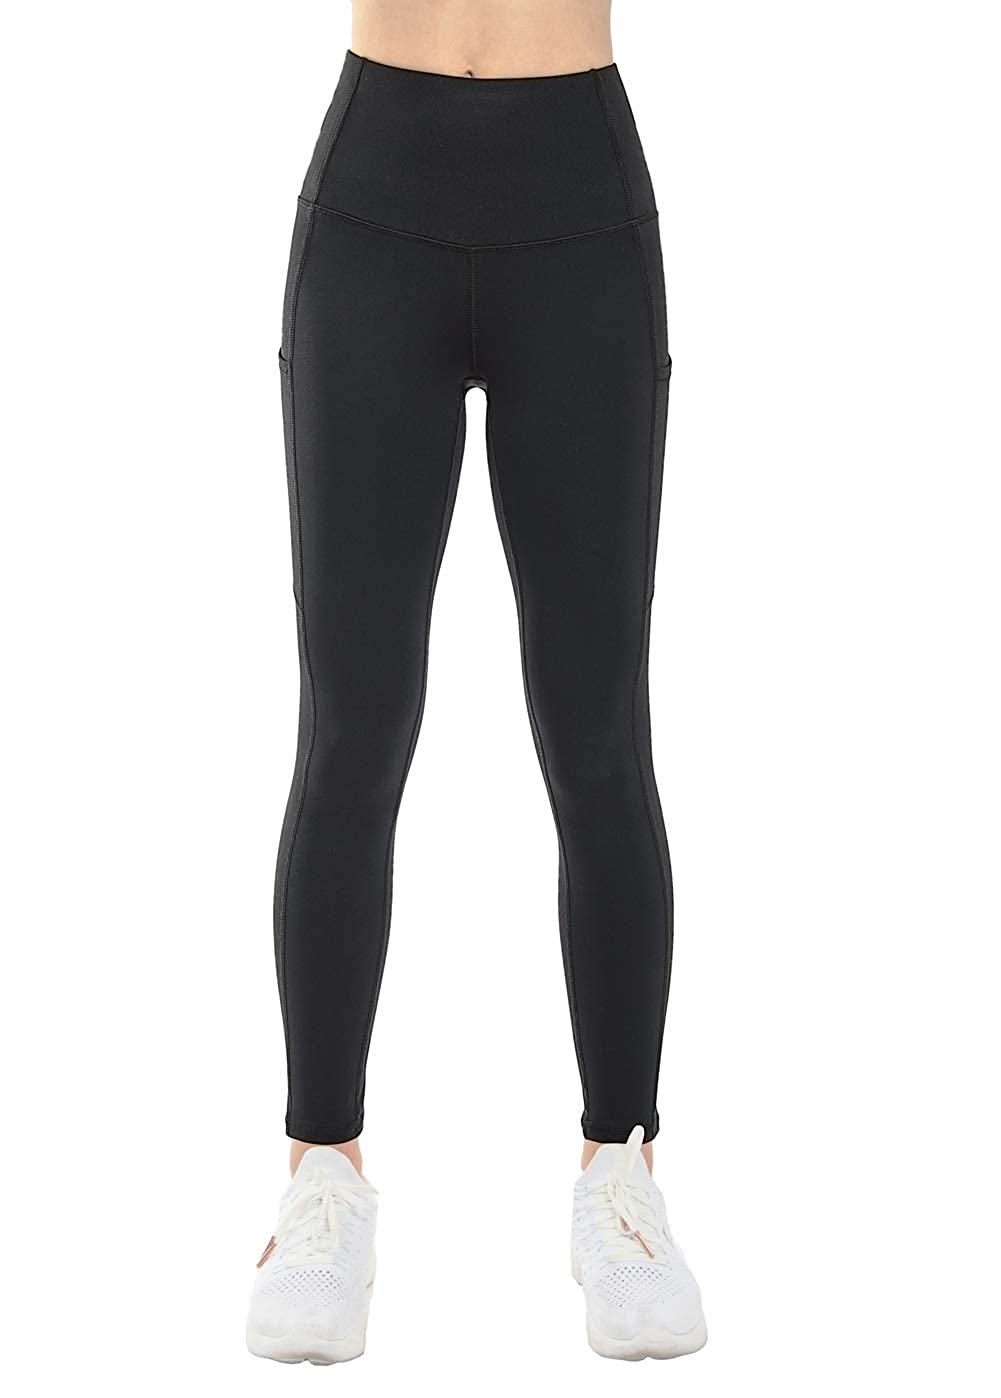 549f56c6b Amazon.com: THE GYM PEOPLE Thick High Waist Yoga Pants with Pockets, Tummy  Control Workout Running Yoga Leggings for Women: Clothing